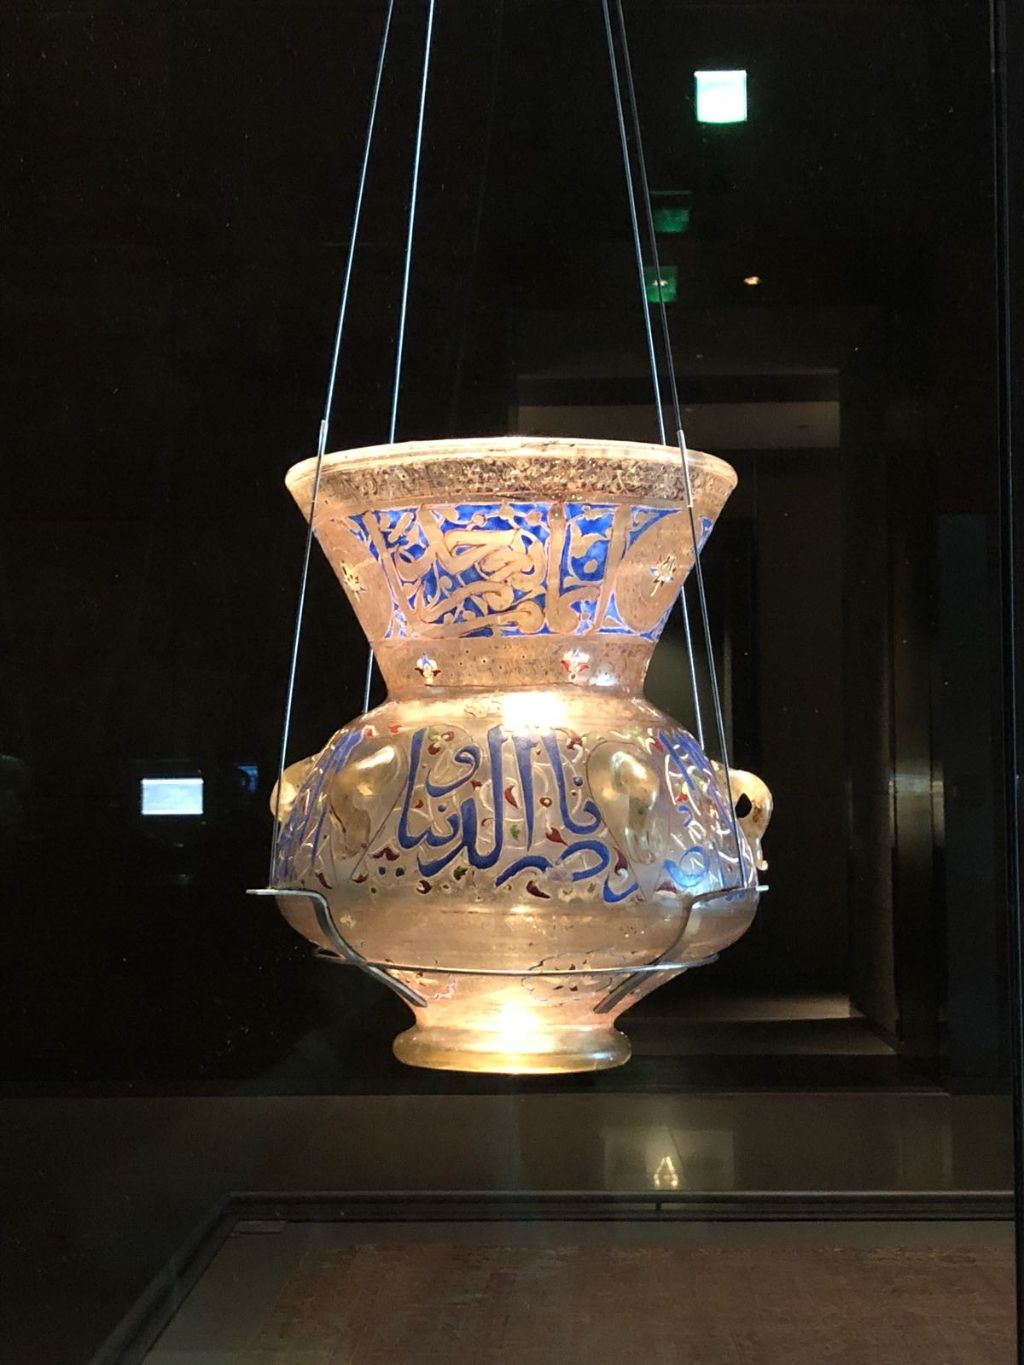 Linda mosque lamp